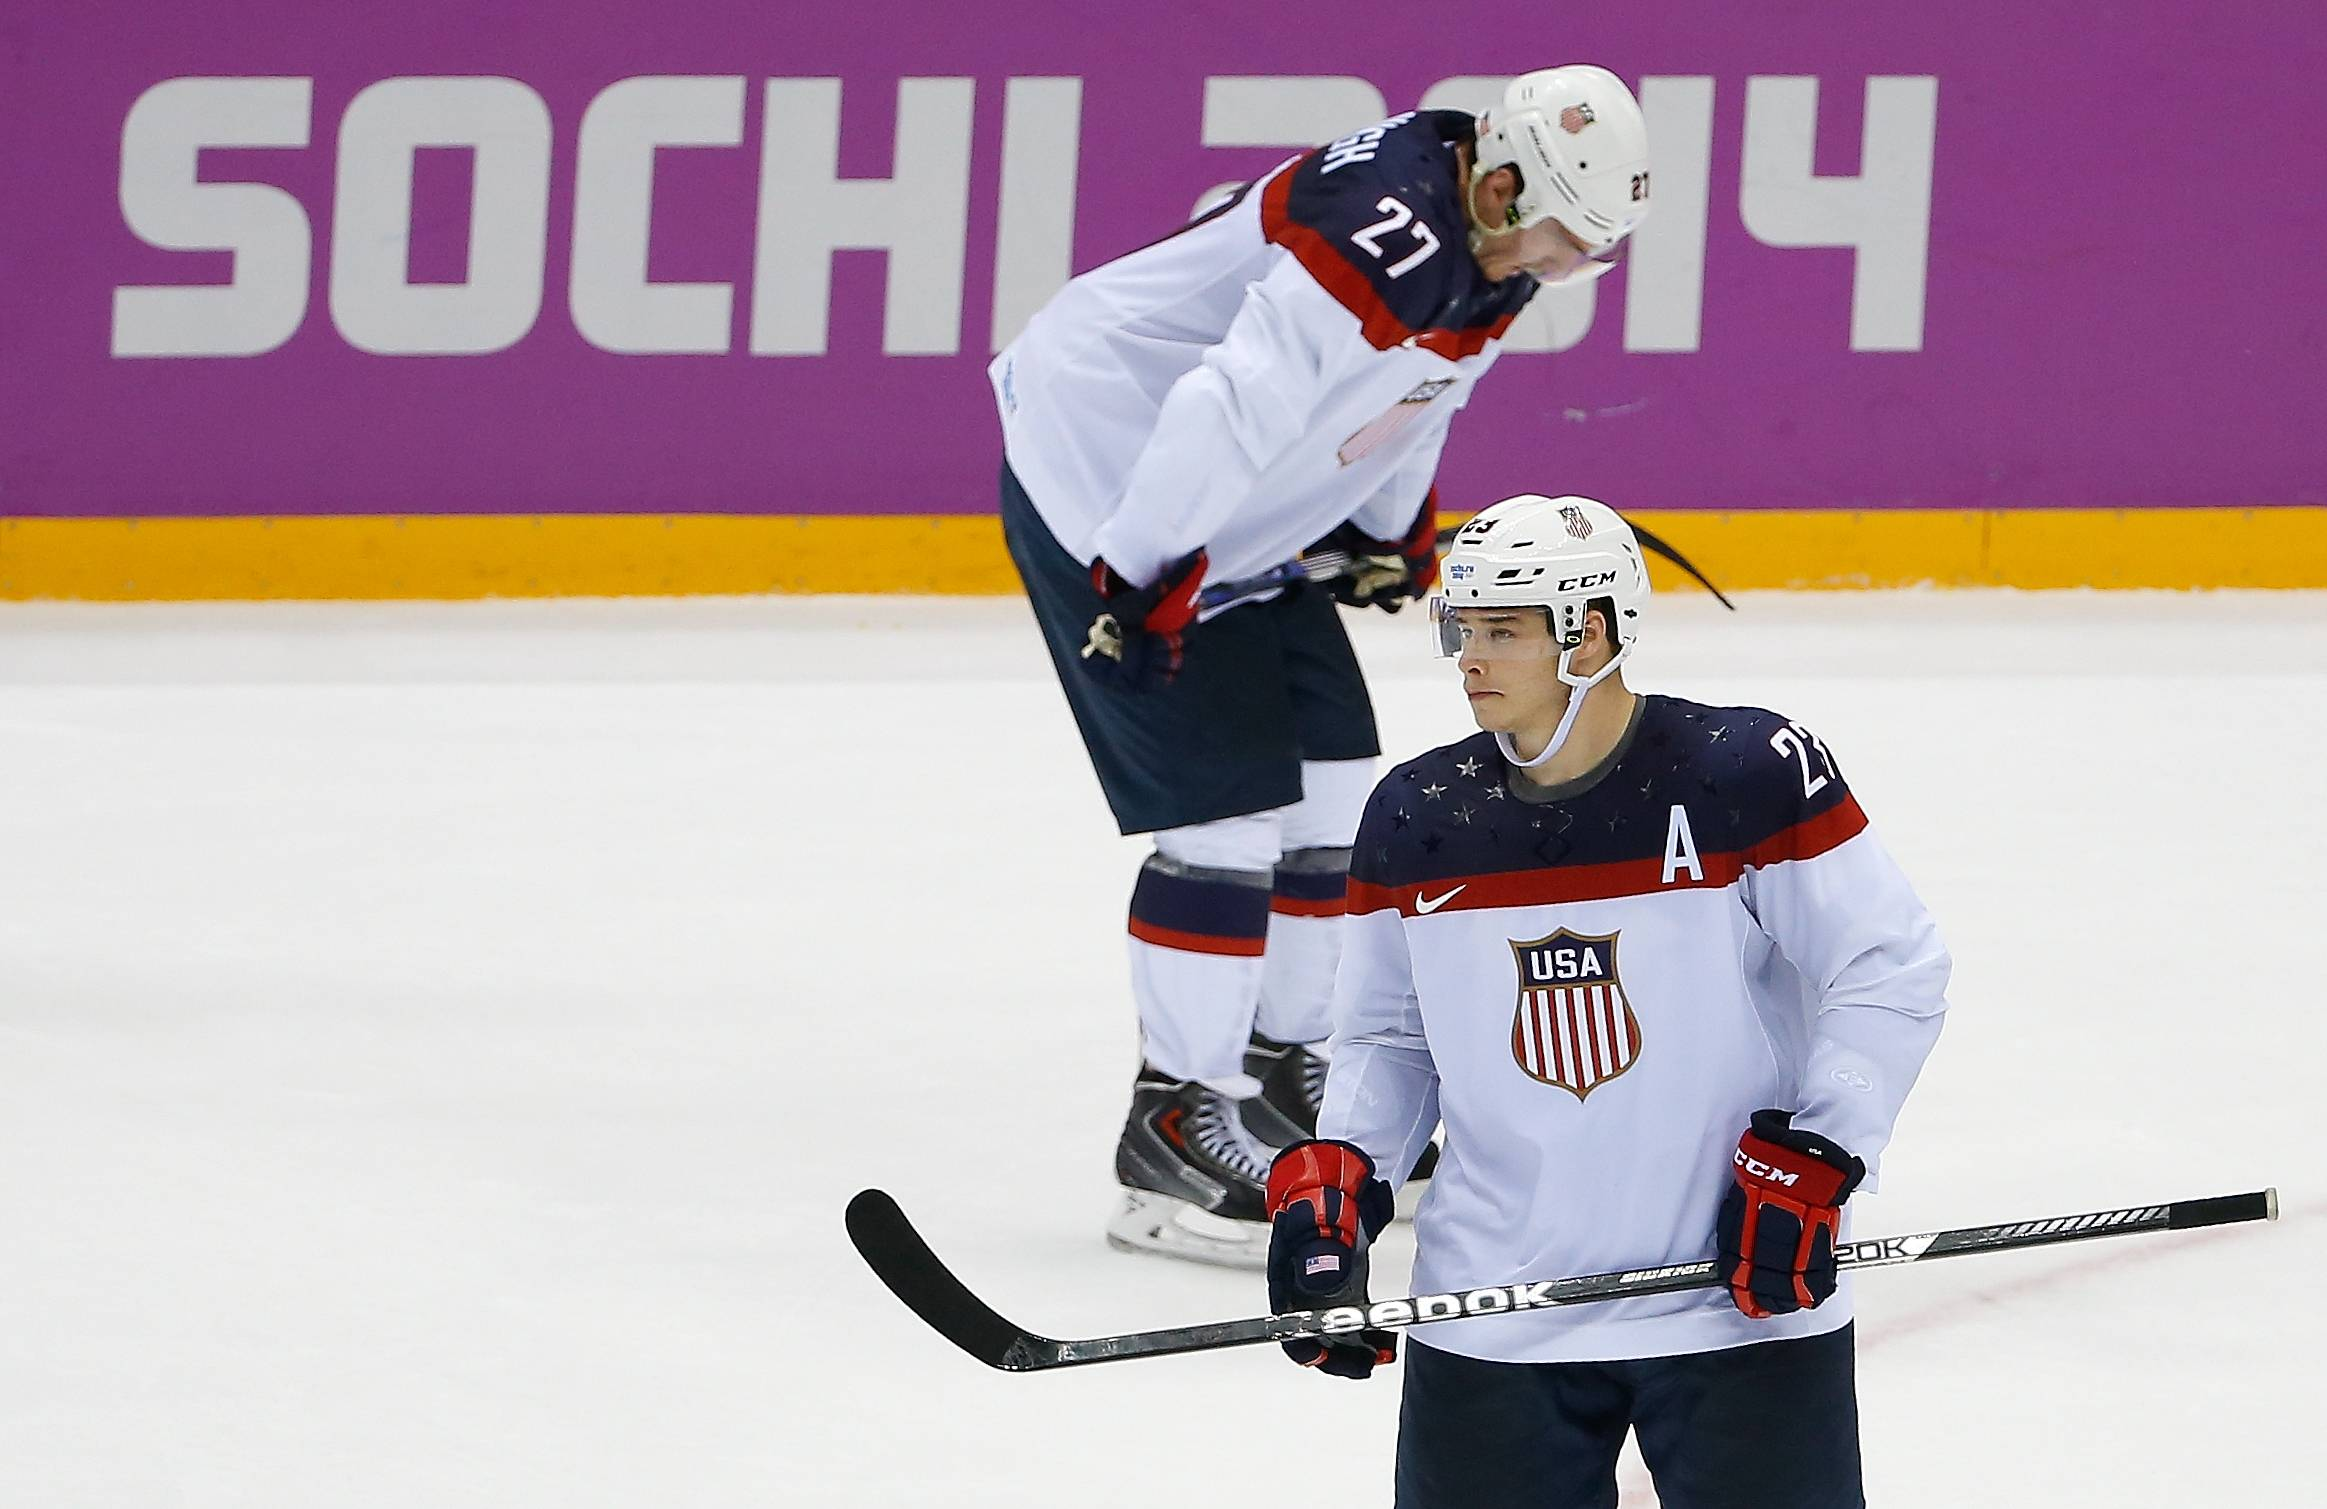 USA forward Dustin Brown (23) and USA defenseman Ryan McDonagh (27) stand on the ice after the 1-0 loss to Canada.